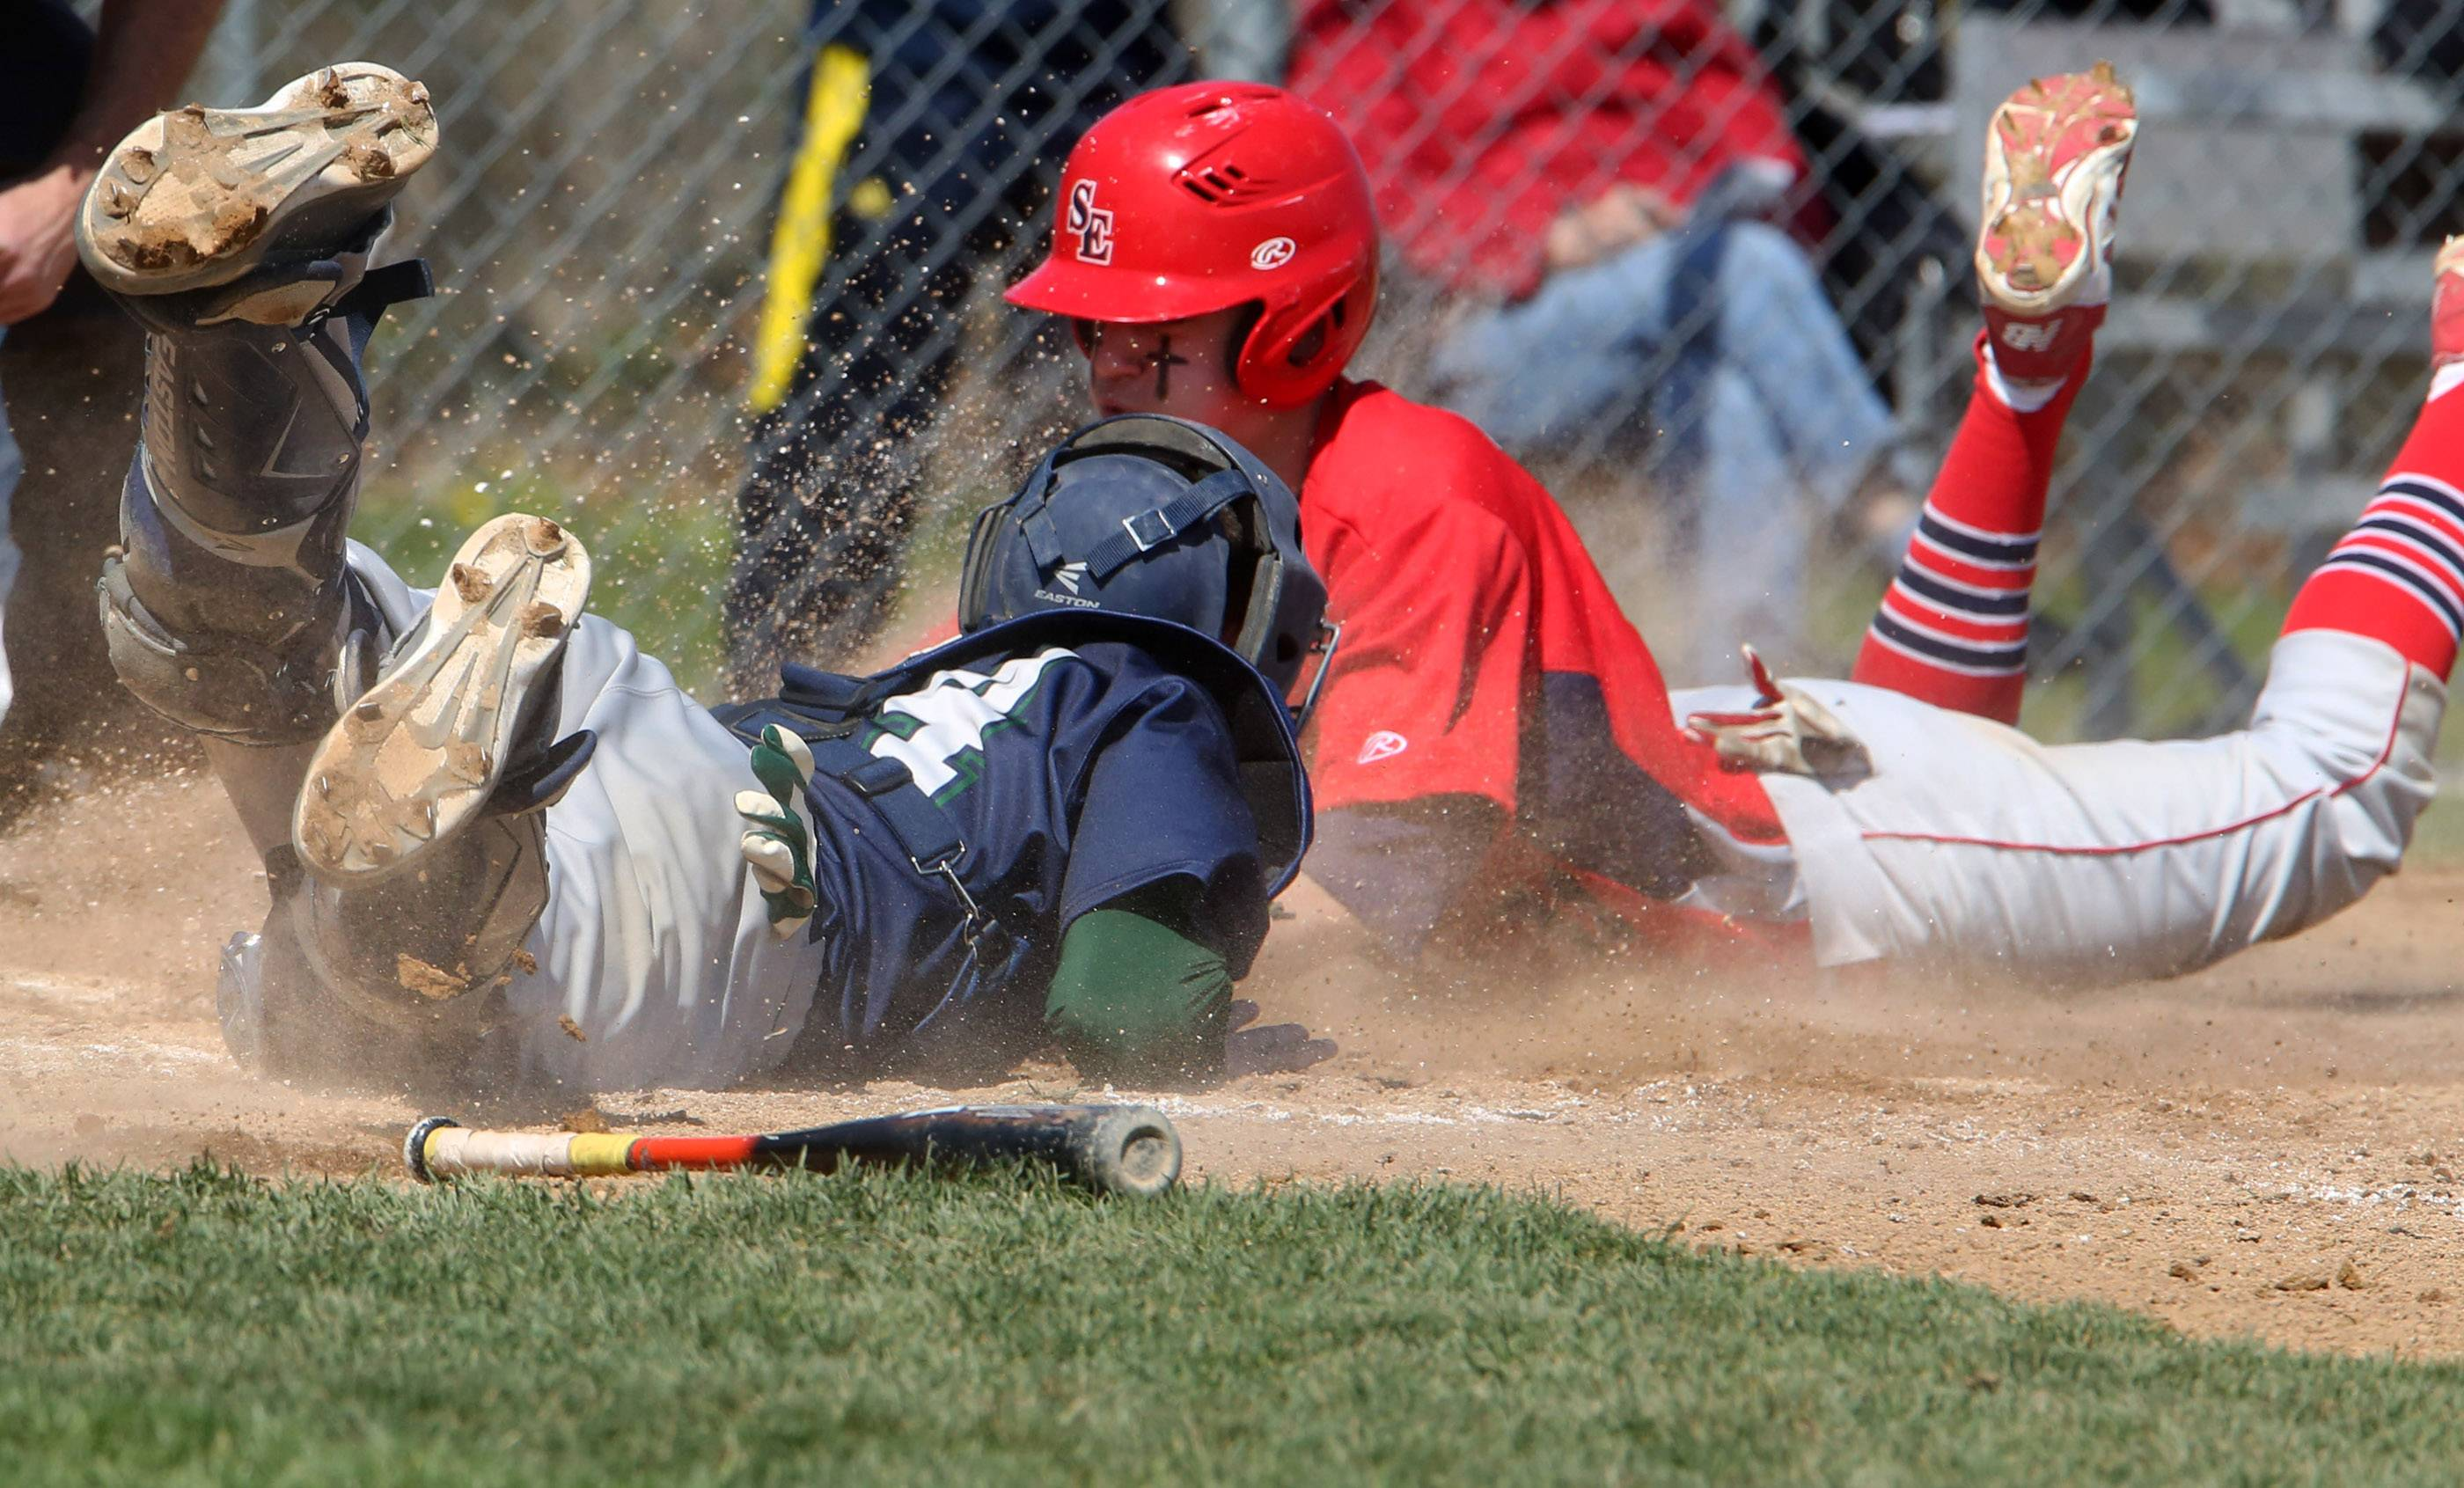 South Elgin's Nick Menken slides safely into home as Bartlett catcher Jordan Flint reaches for the tag on Saturday at South Elgin.